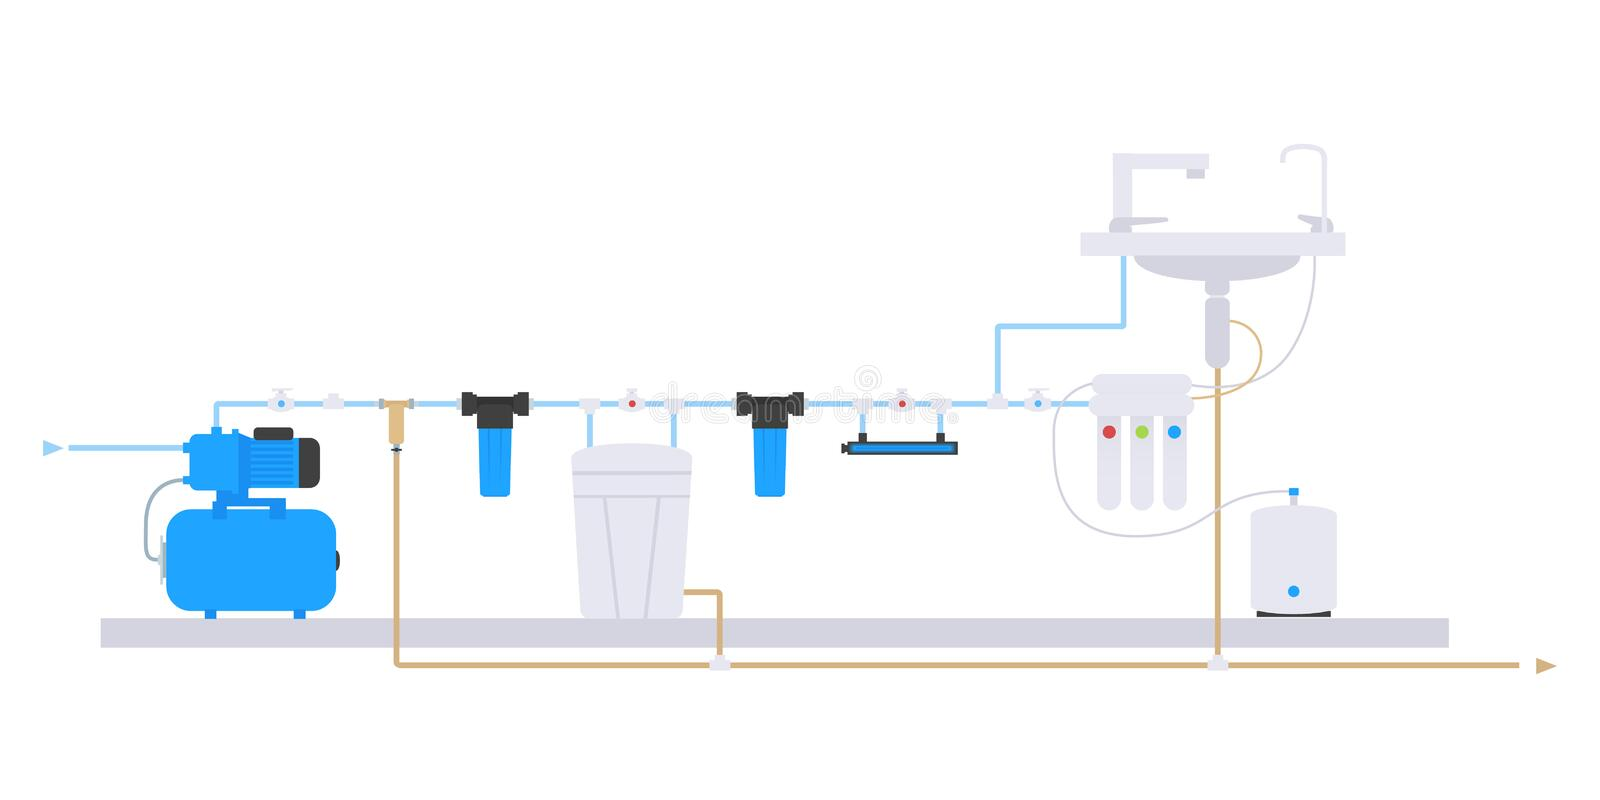 Flat style. Scheme of water supply and purification of water from the well. Water filter system scheme vector illustration